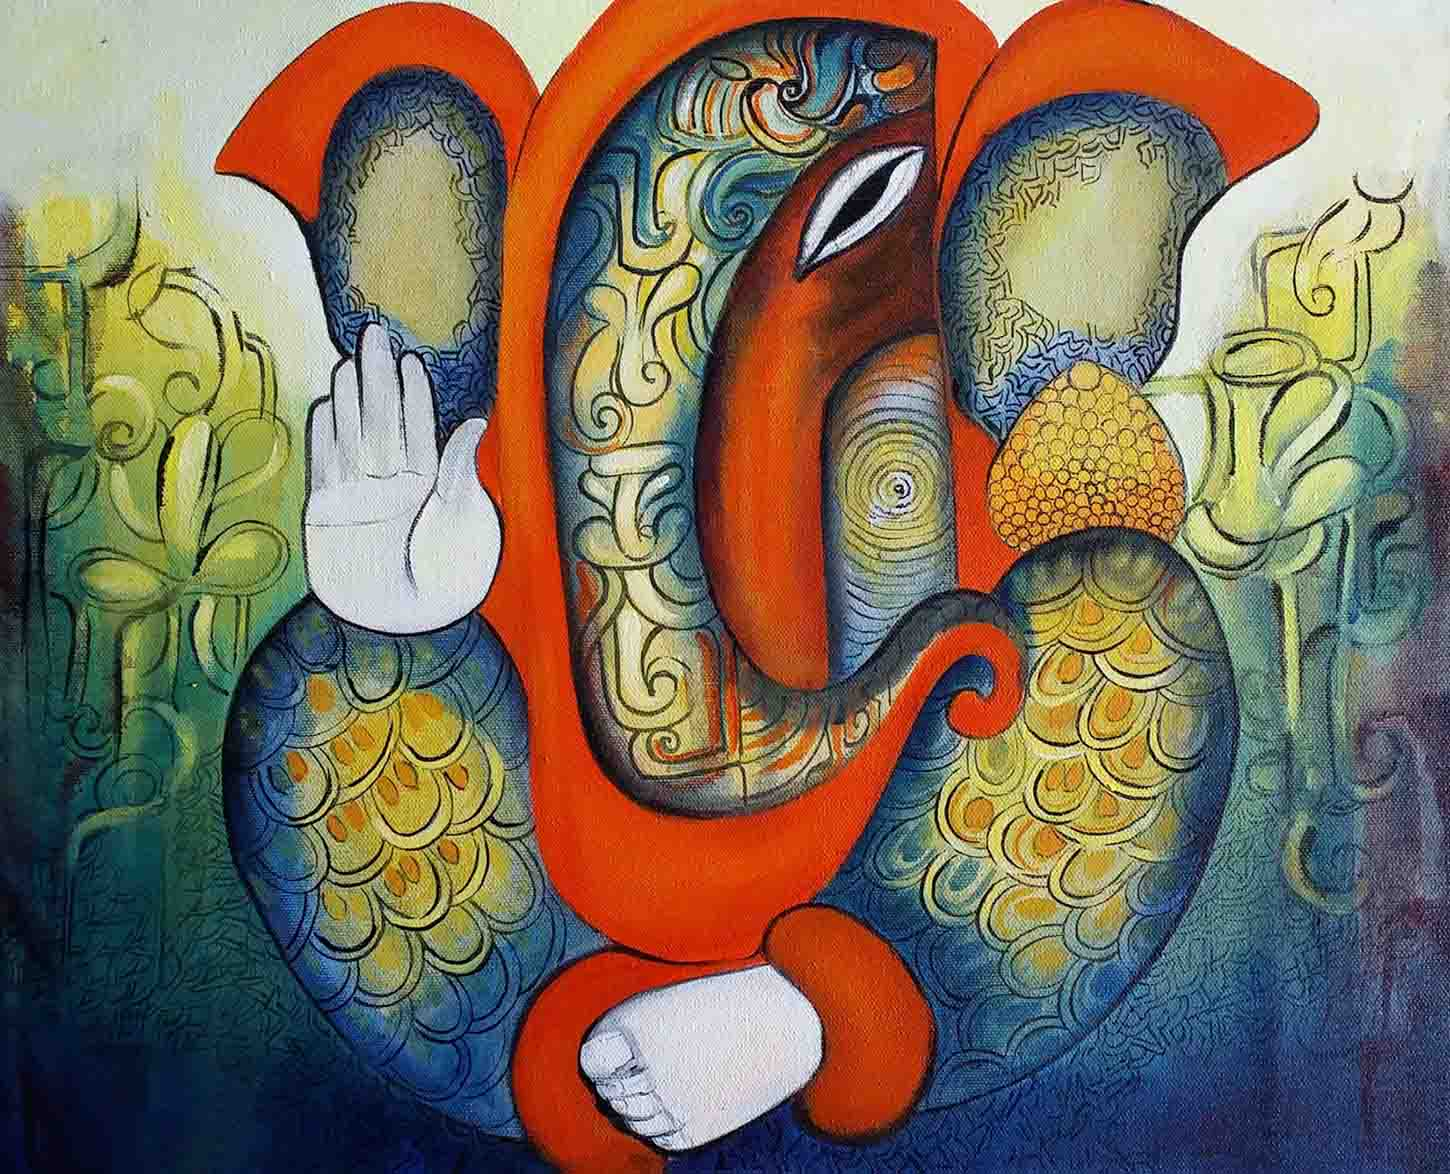 ganesha paintings modern art - photo #39